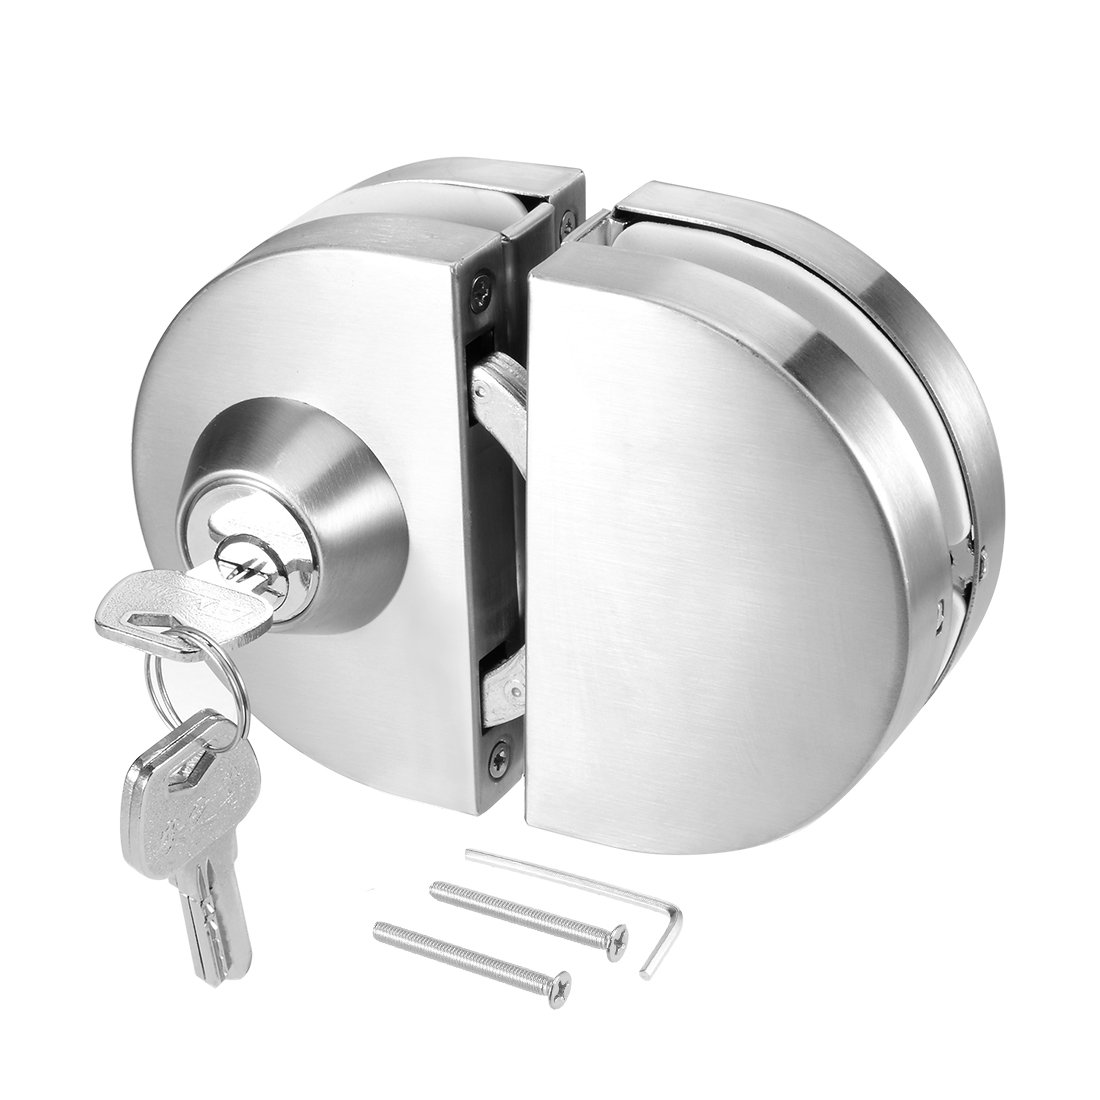 uxcell 10mm-12mm Glass Door Double Latch Lock Stainless Steel Brushed Finish